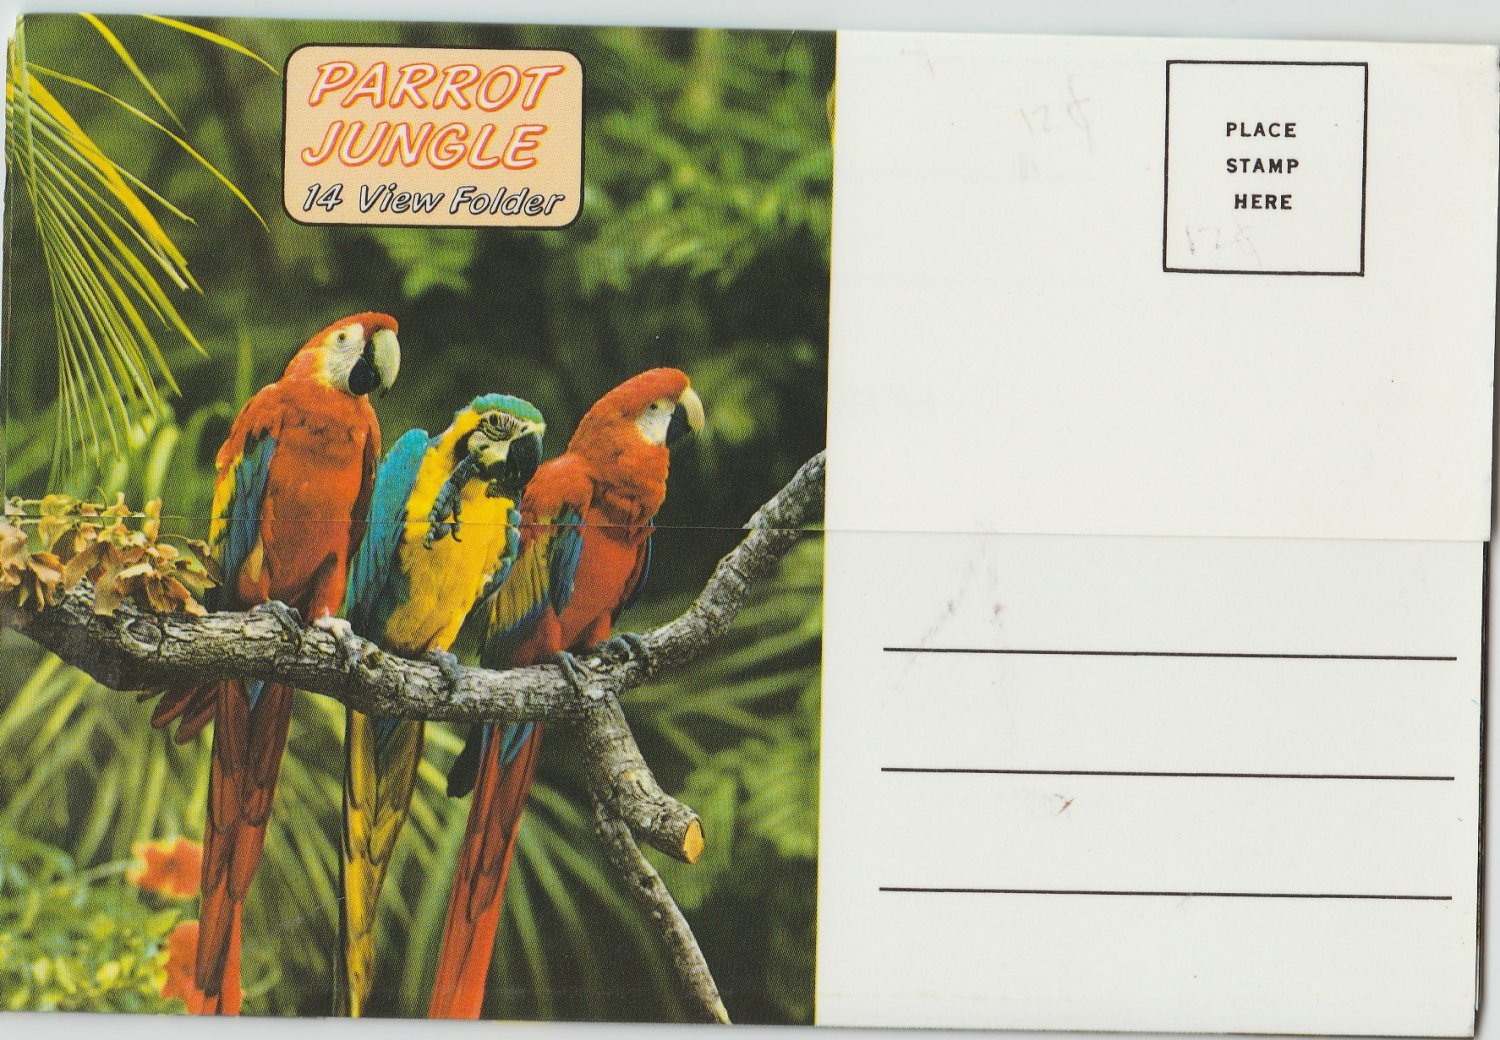 Parrot Jungle Postcard Folder Beautiful Birds Flamingos Macaws Miami Florida